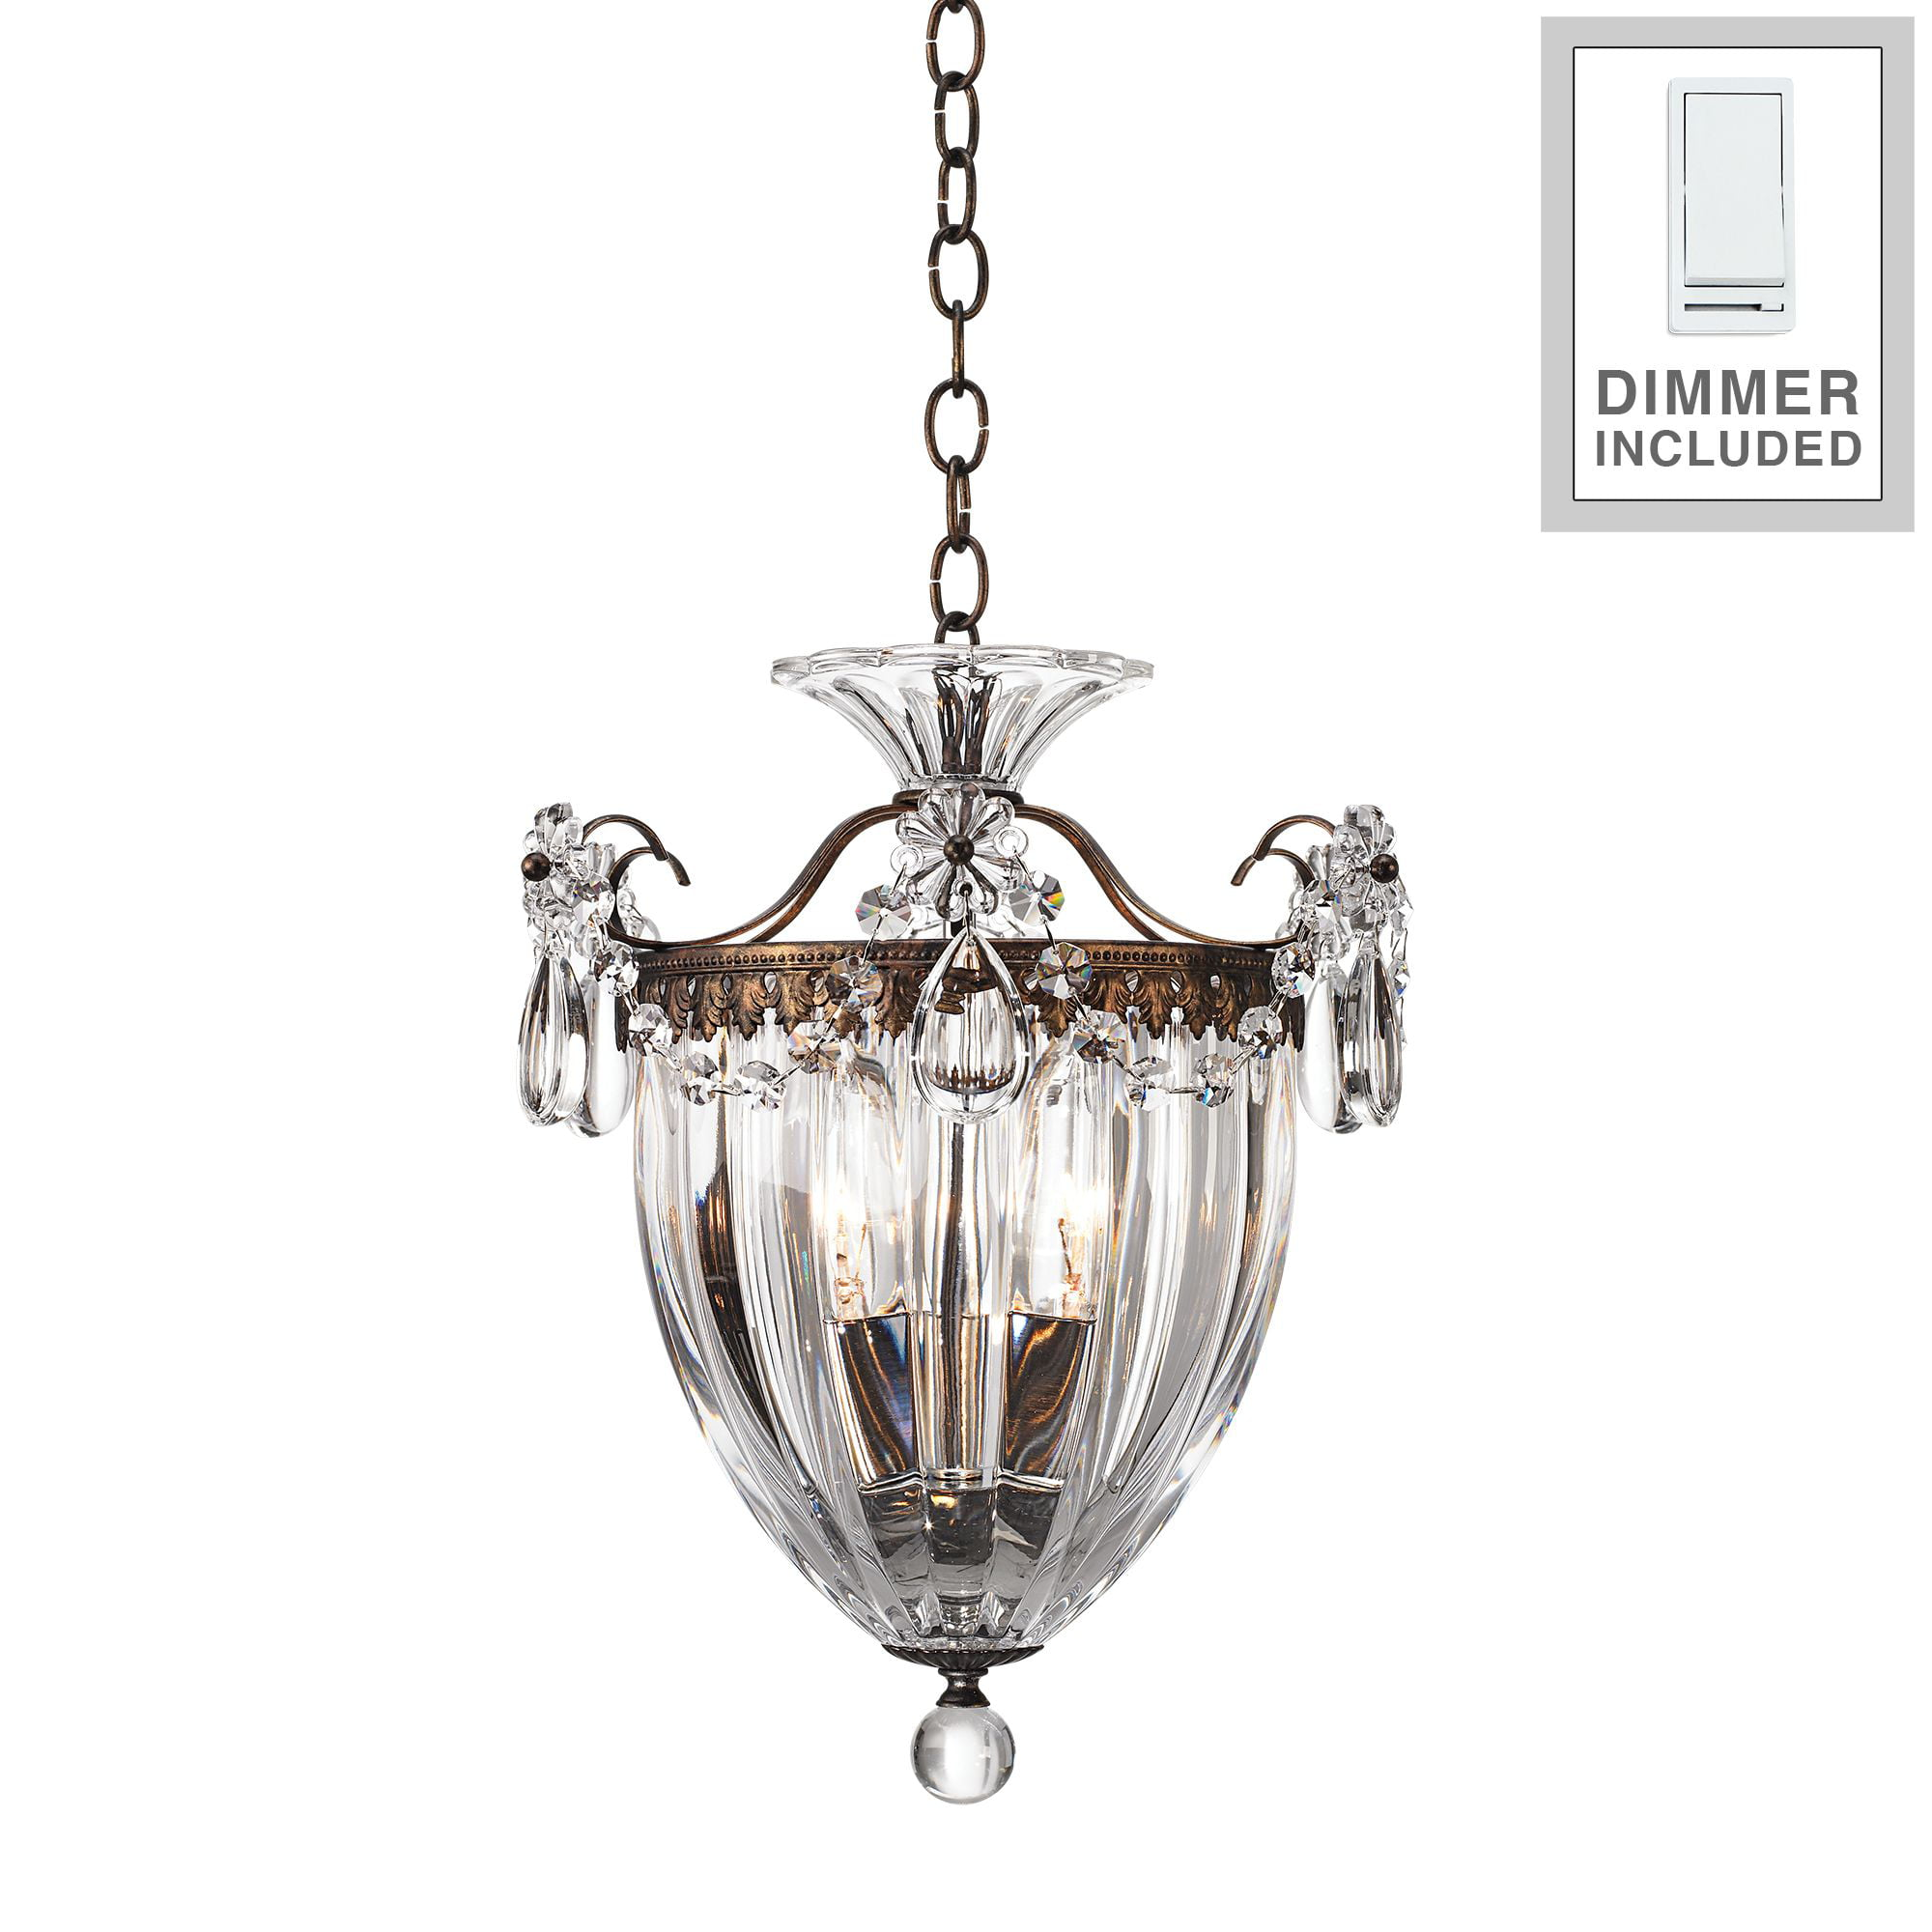 "Schonbek Bagatelle 10 1 2""W Crystal Mini Pendant With Dimmer by Schonbek"